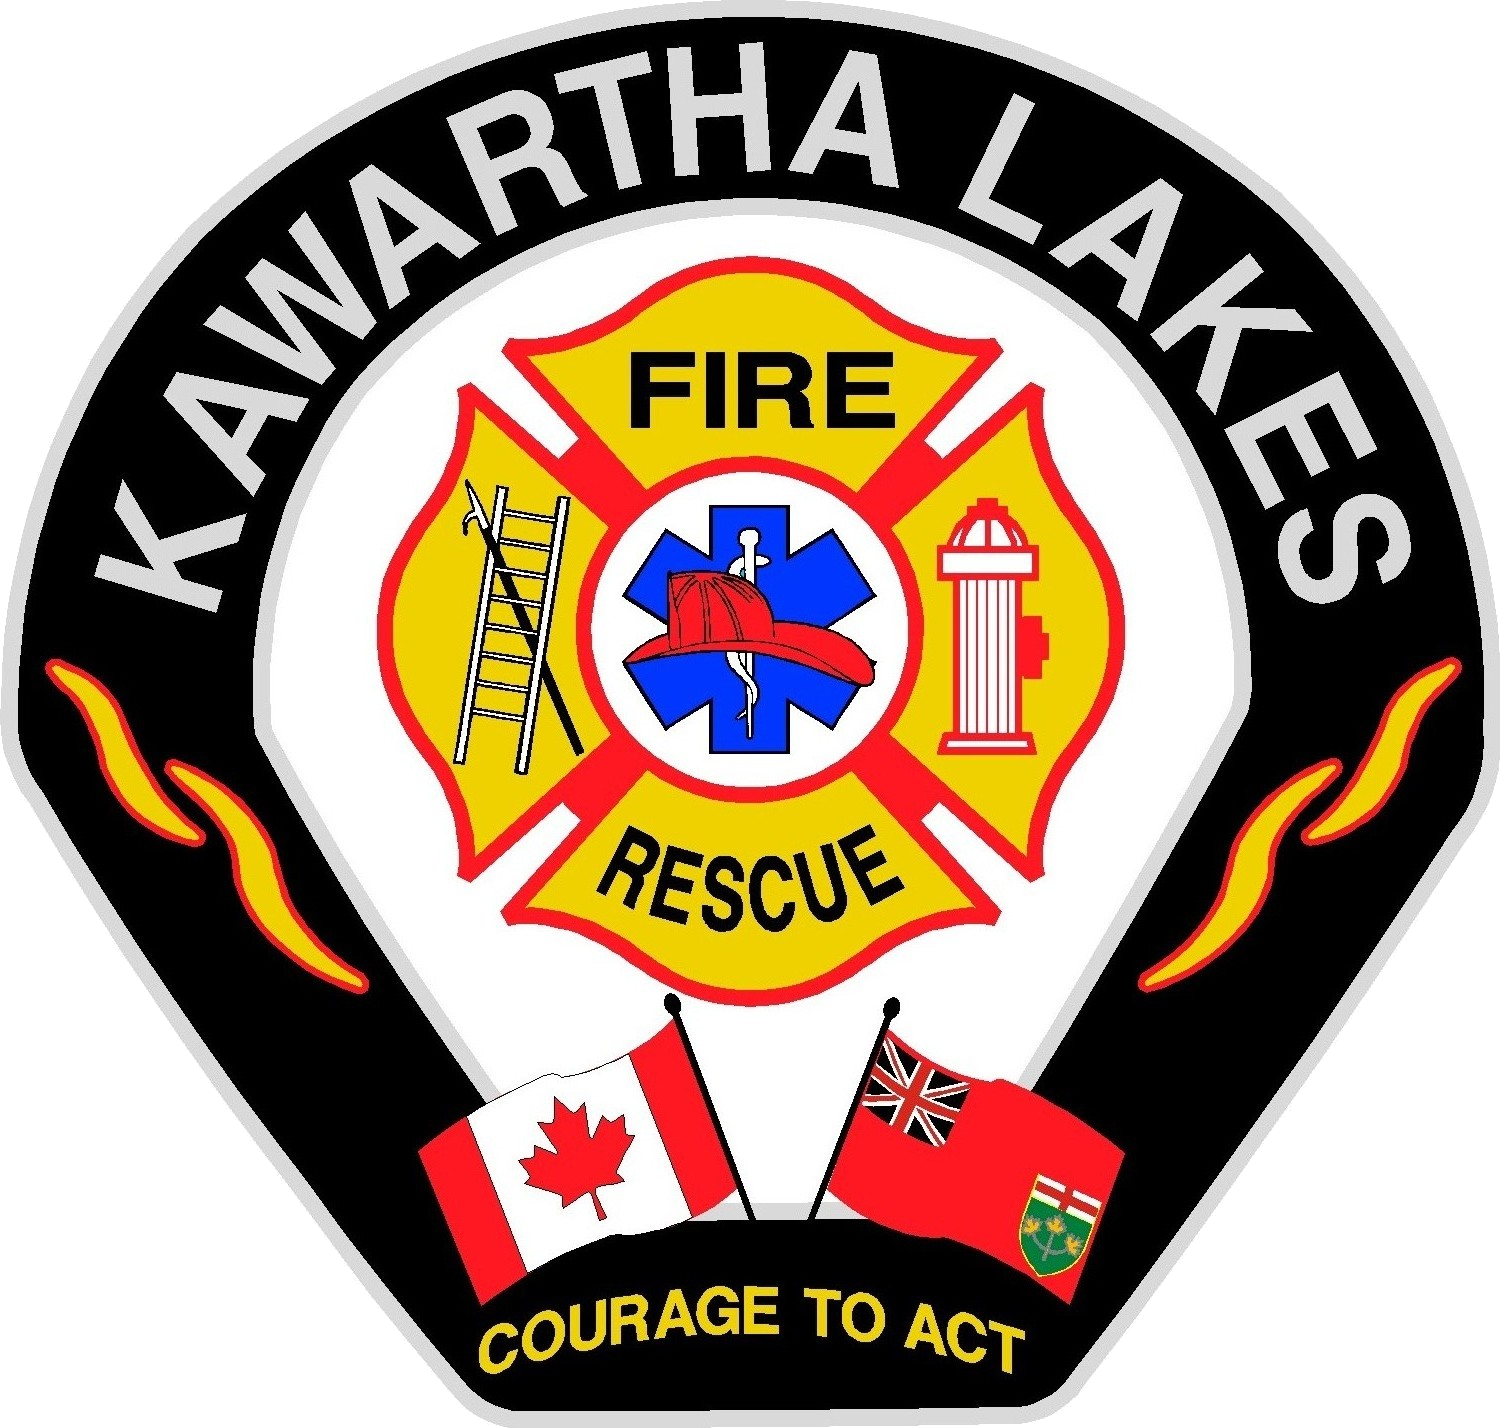 Kawartha Lakes Fire Rescue